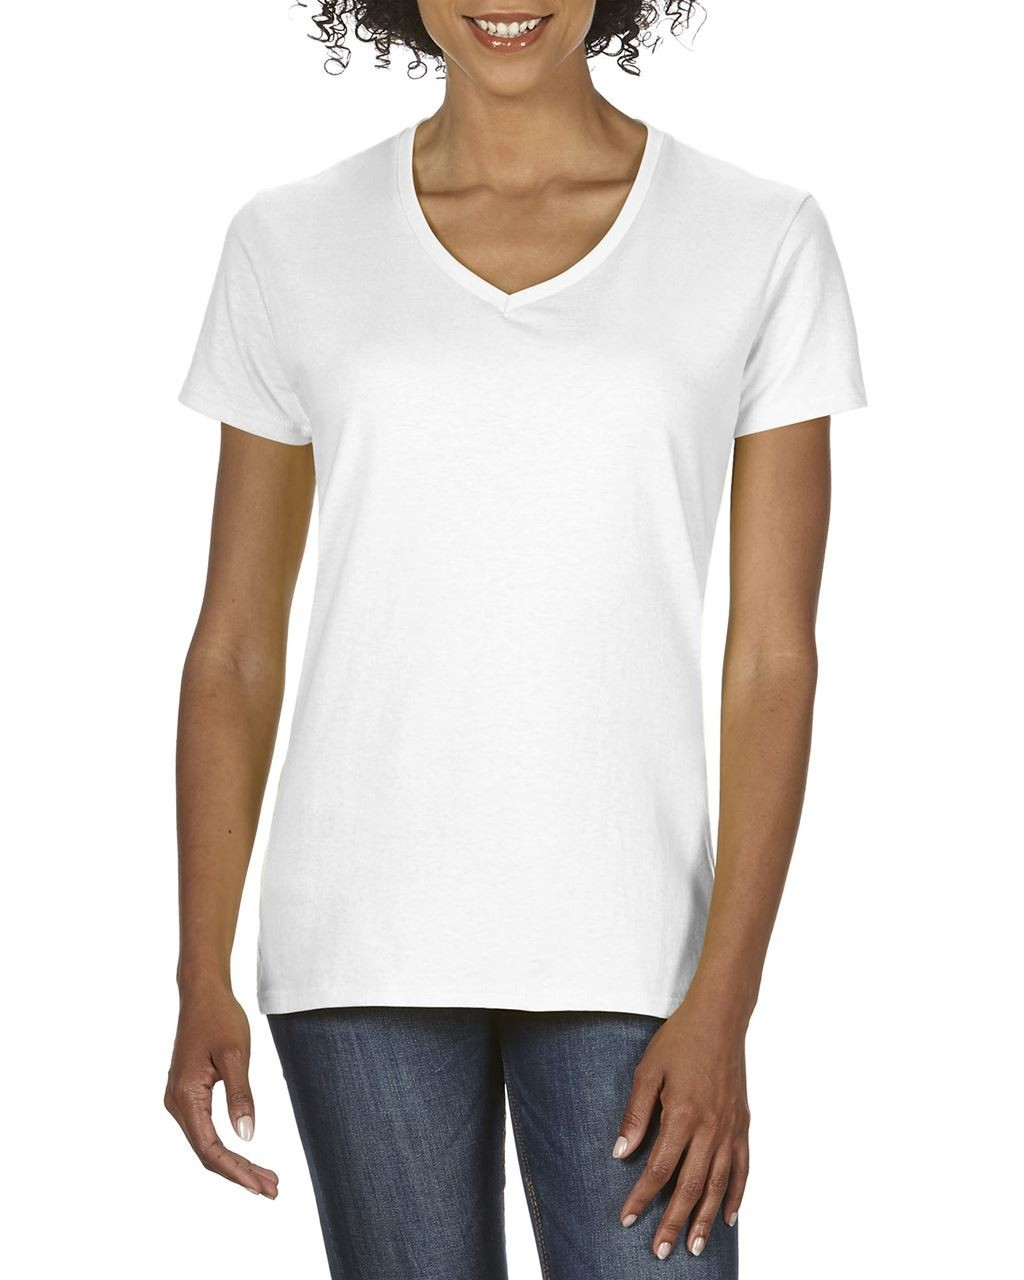 cb989e1e0d Gildan Premium Cotton Ladies V-neck T-shirt, White, 2XL (T-shirt, 90 ...